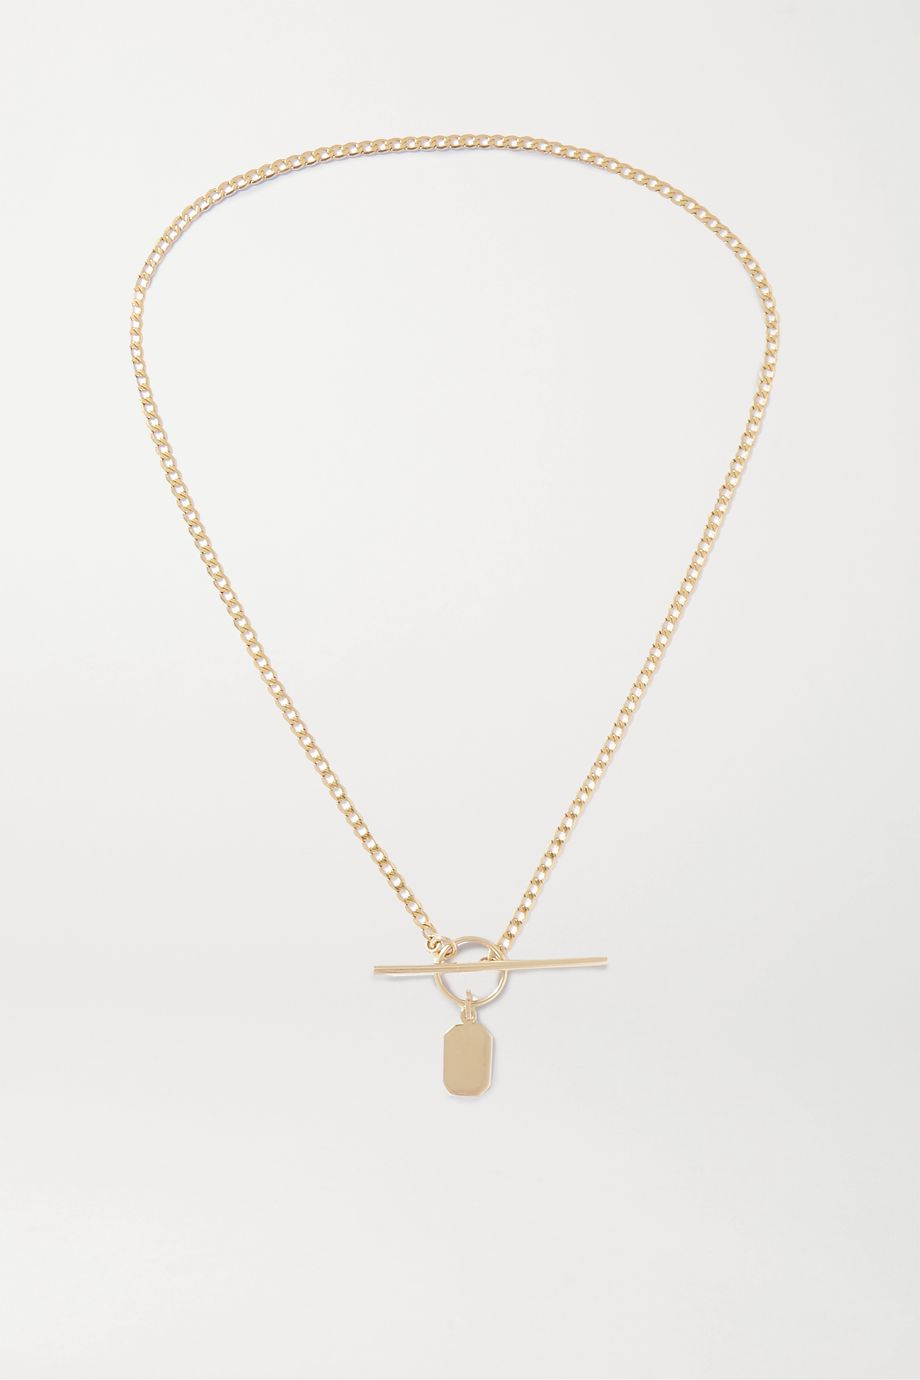 Loren Stewart + NET SUSTAIN 14-karat gold necklace